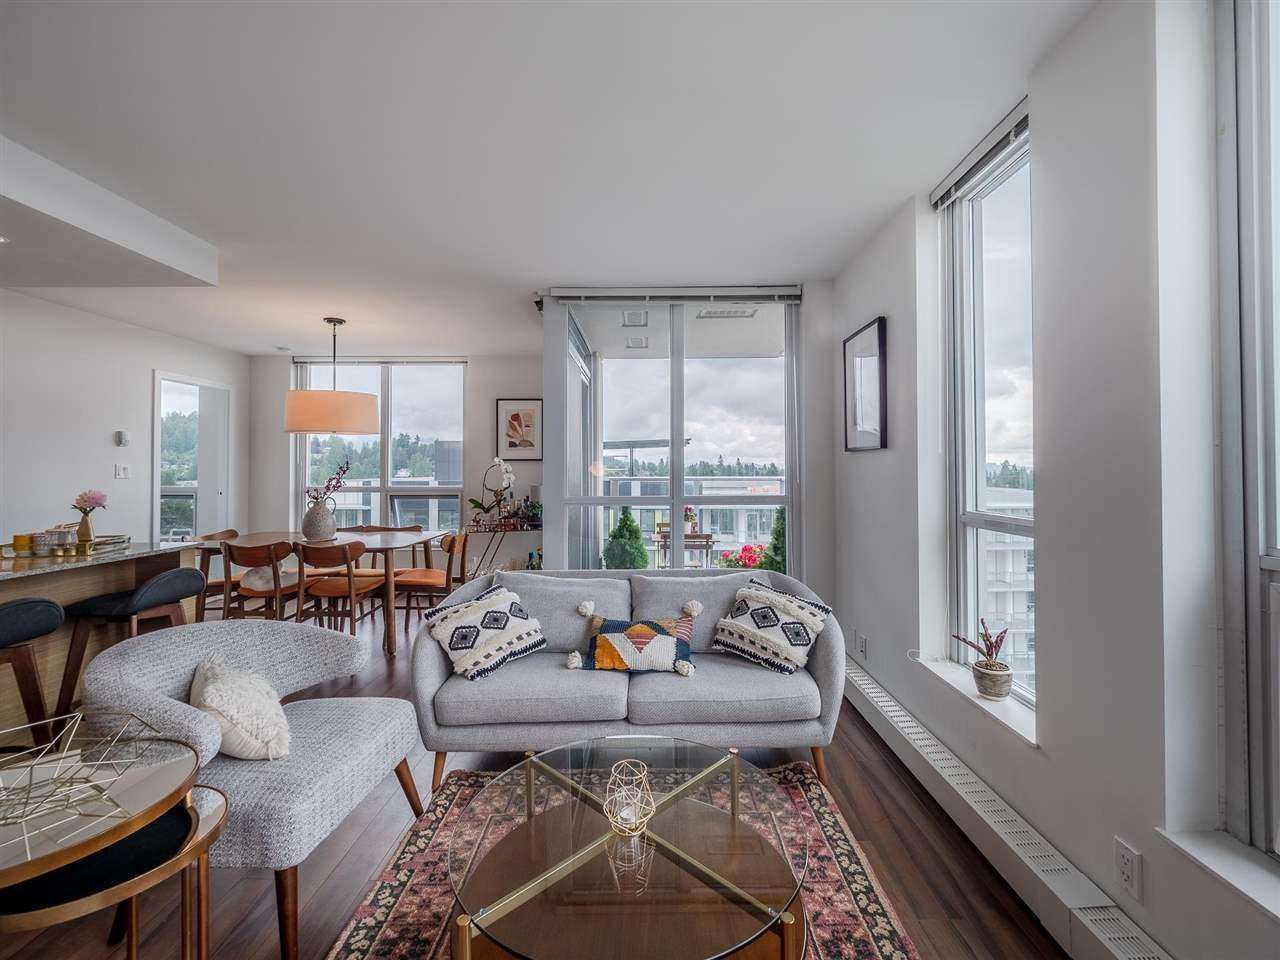 1607 135 E 17TH STREET - Central Lonsdale Apartment/Condo for sale, 1 Bedroom (R2603489) - #9